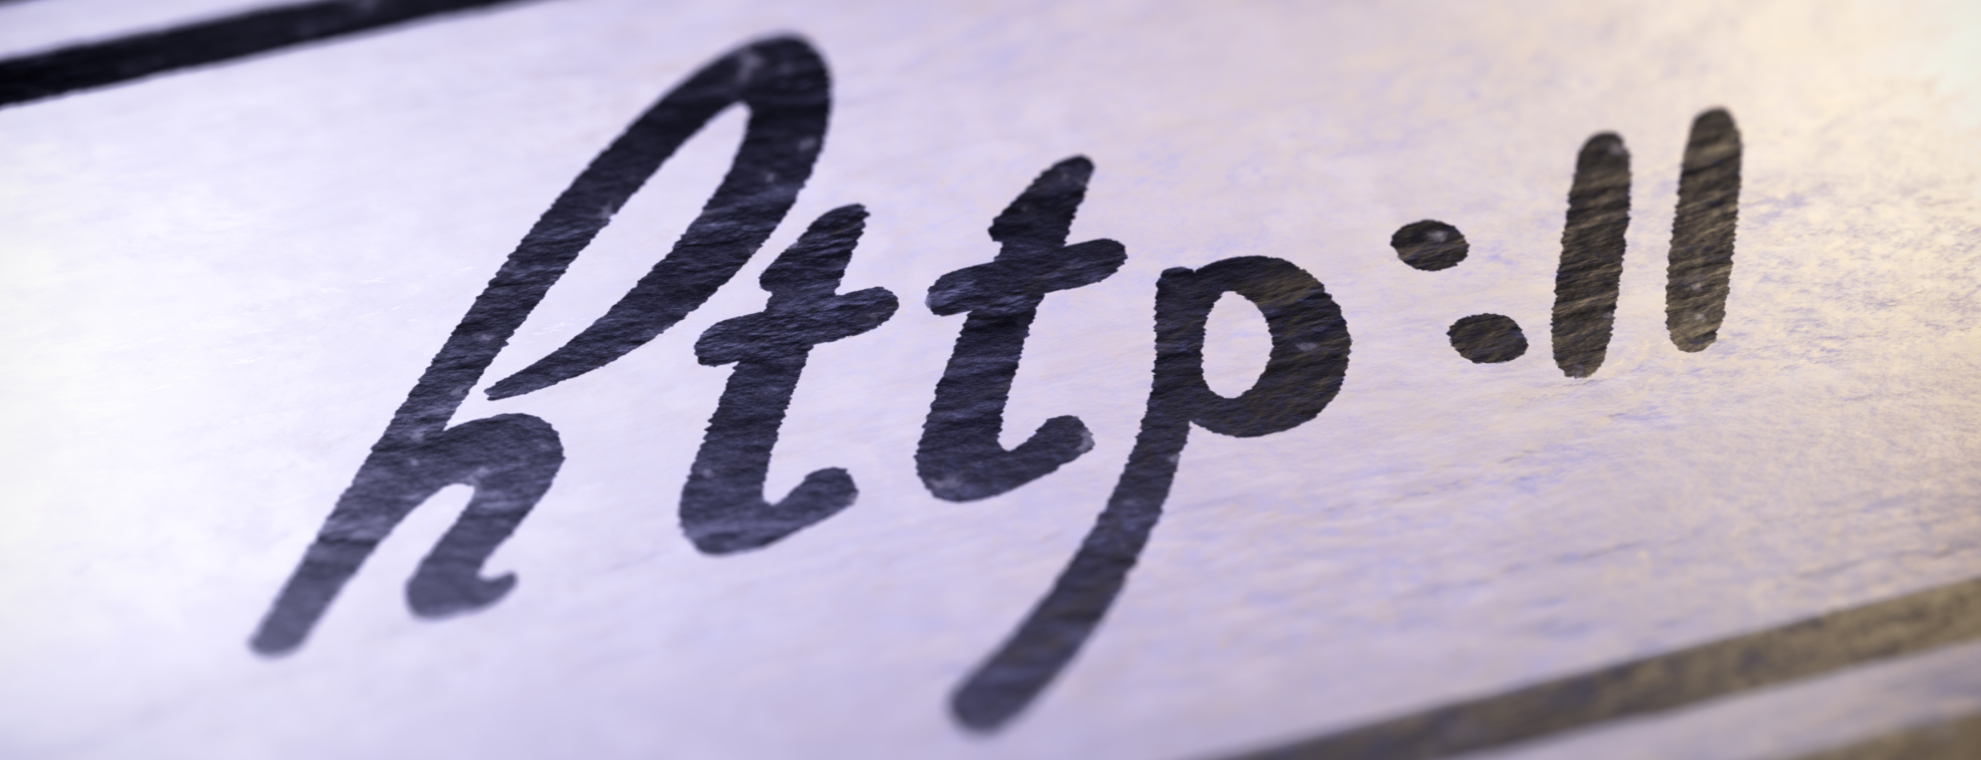 5 Steps to Find a Perfect, Affordable Domain Name